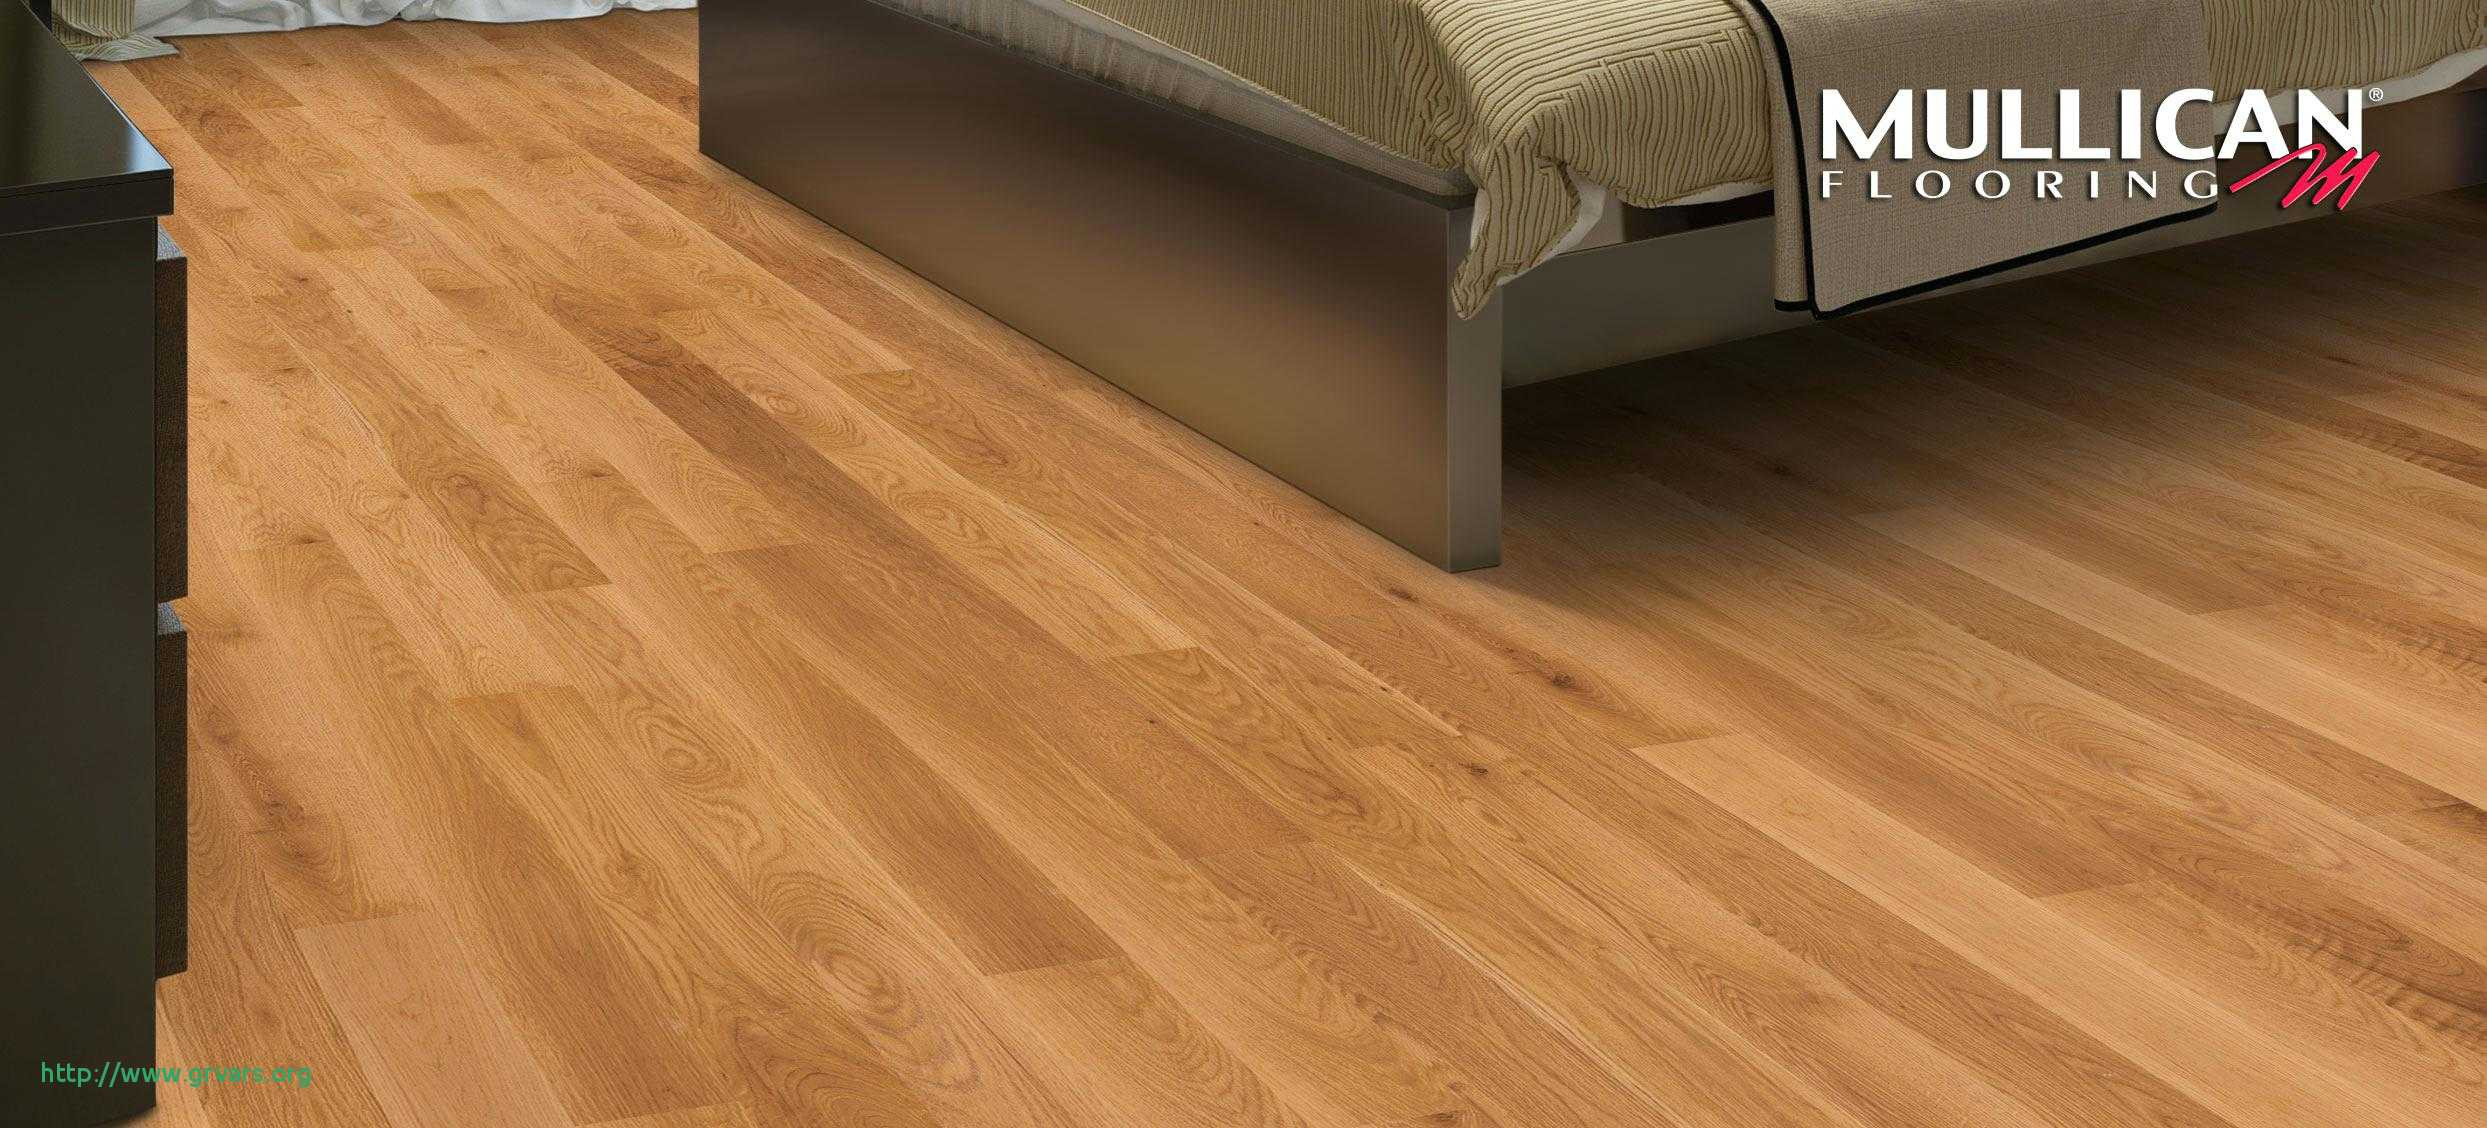 bamboo hardwood flooring reviews of bamboo flooring reviews pros and cons australia beau bamboo flooring in bamboo flooring reviews pros and cons australia nouveau laminate hardwood flooring hard stairs with overhang wood